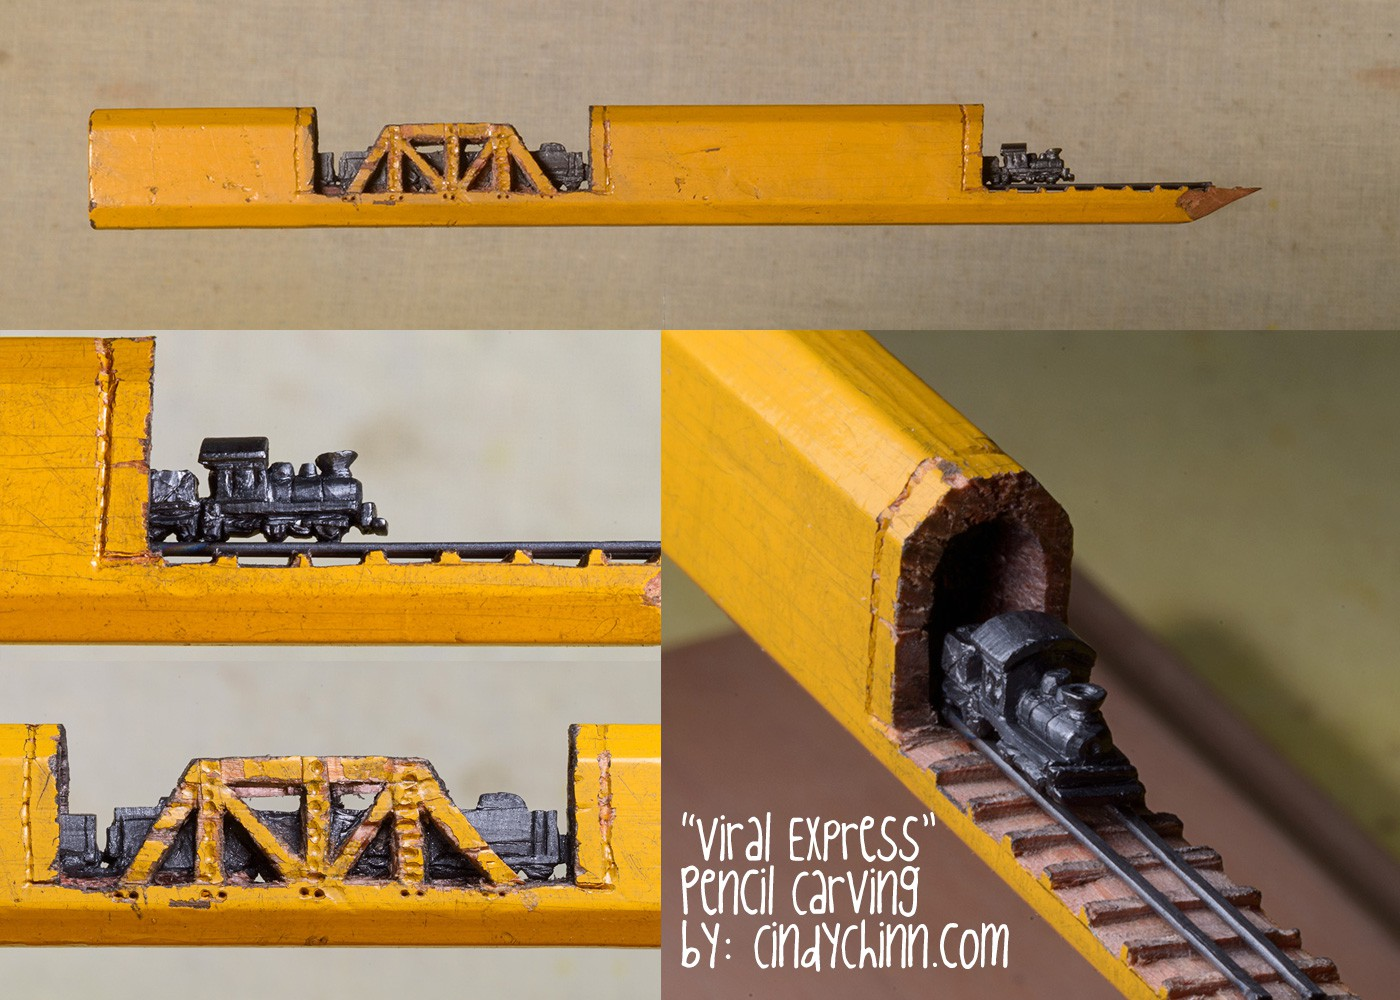 16-Viral-Express-Train-Cindy-Chinn-Miniature-Carvings-of-Pencil-Graphite-www-designstack-co